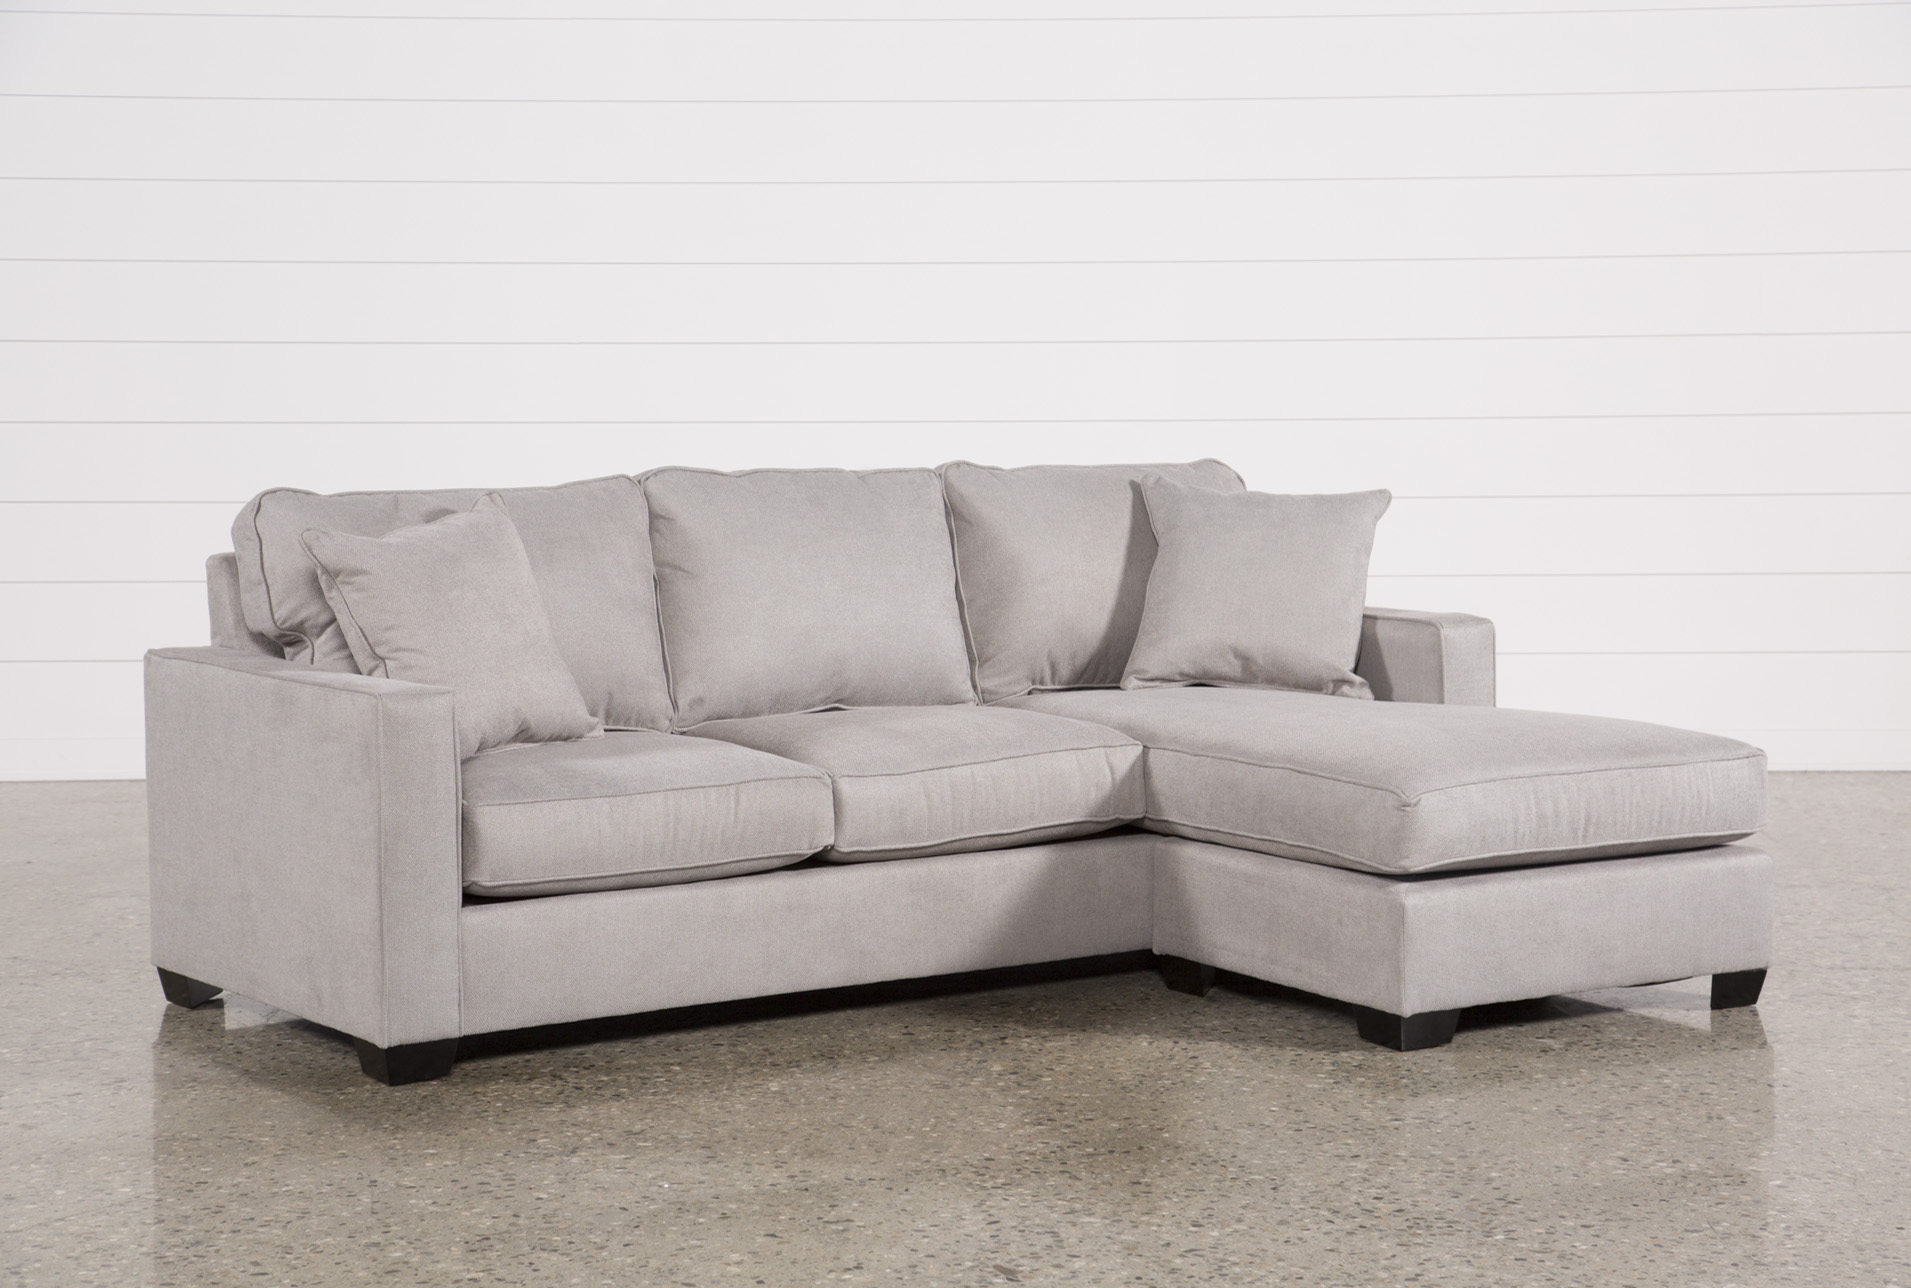 Egan II Cement Sofa W/Reversible Chaise (Qty: 1) Has Been Successfully  Added To Your Cart.